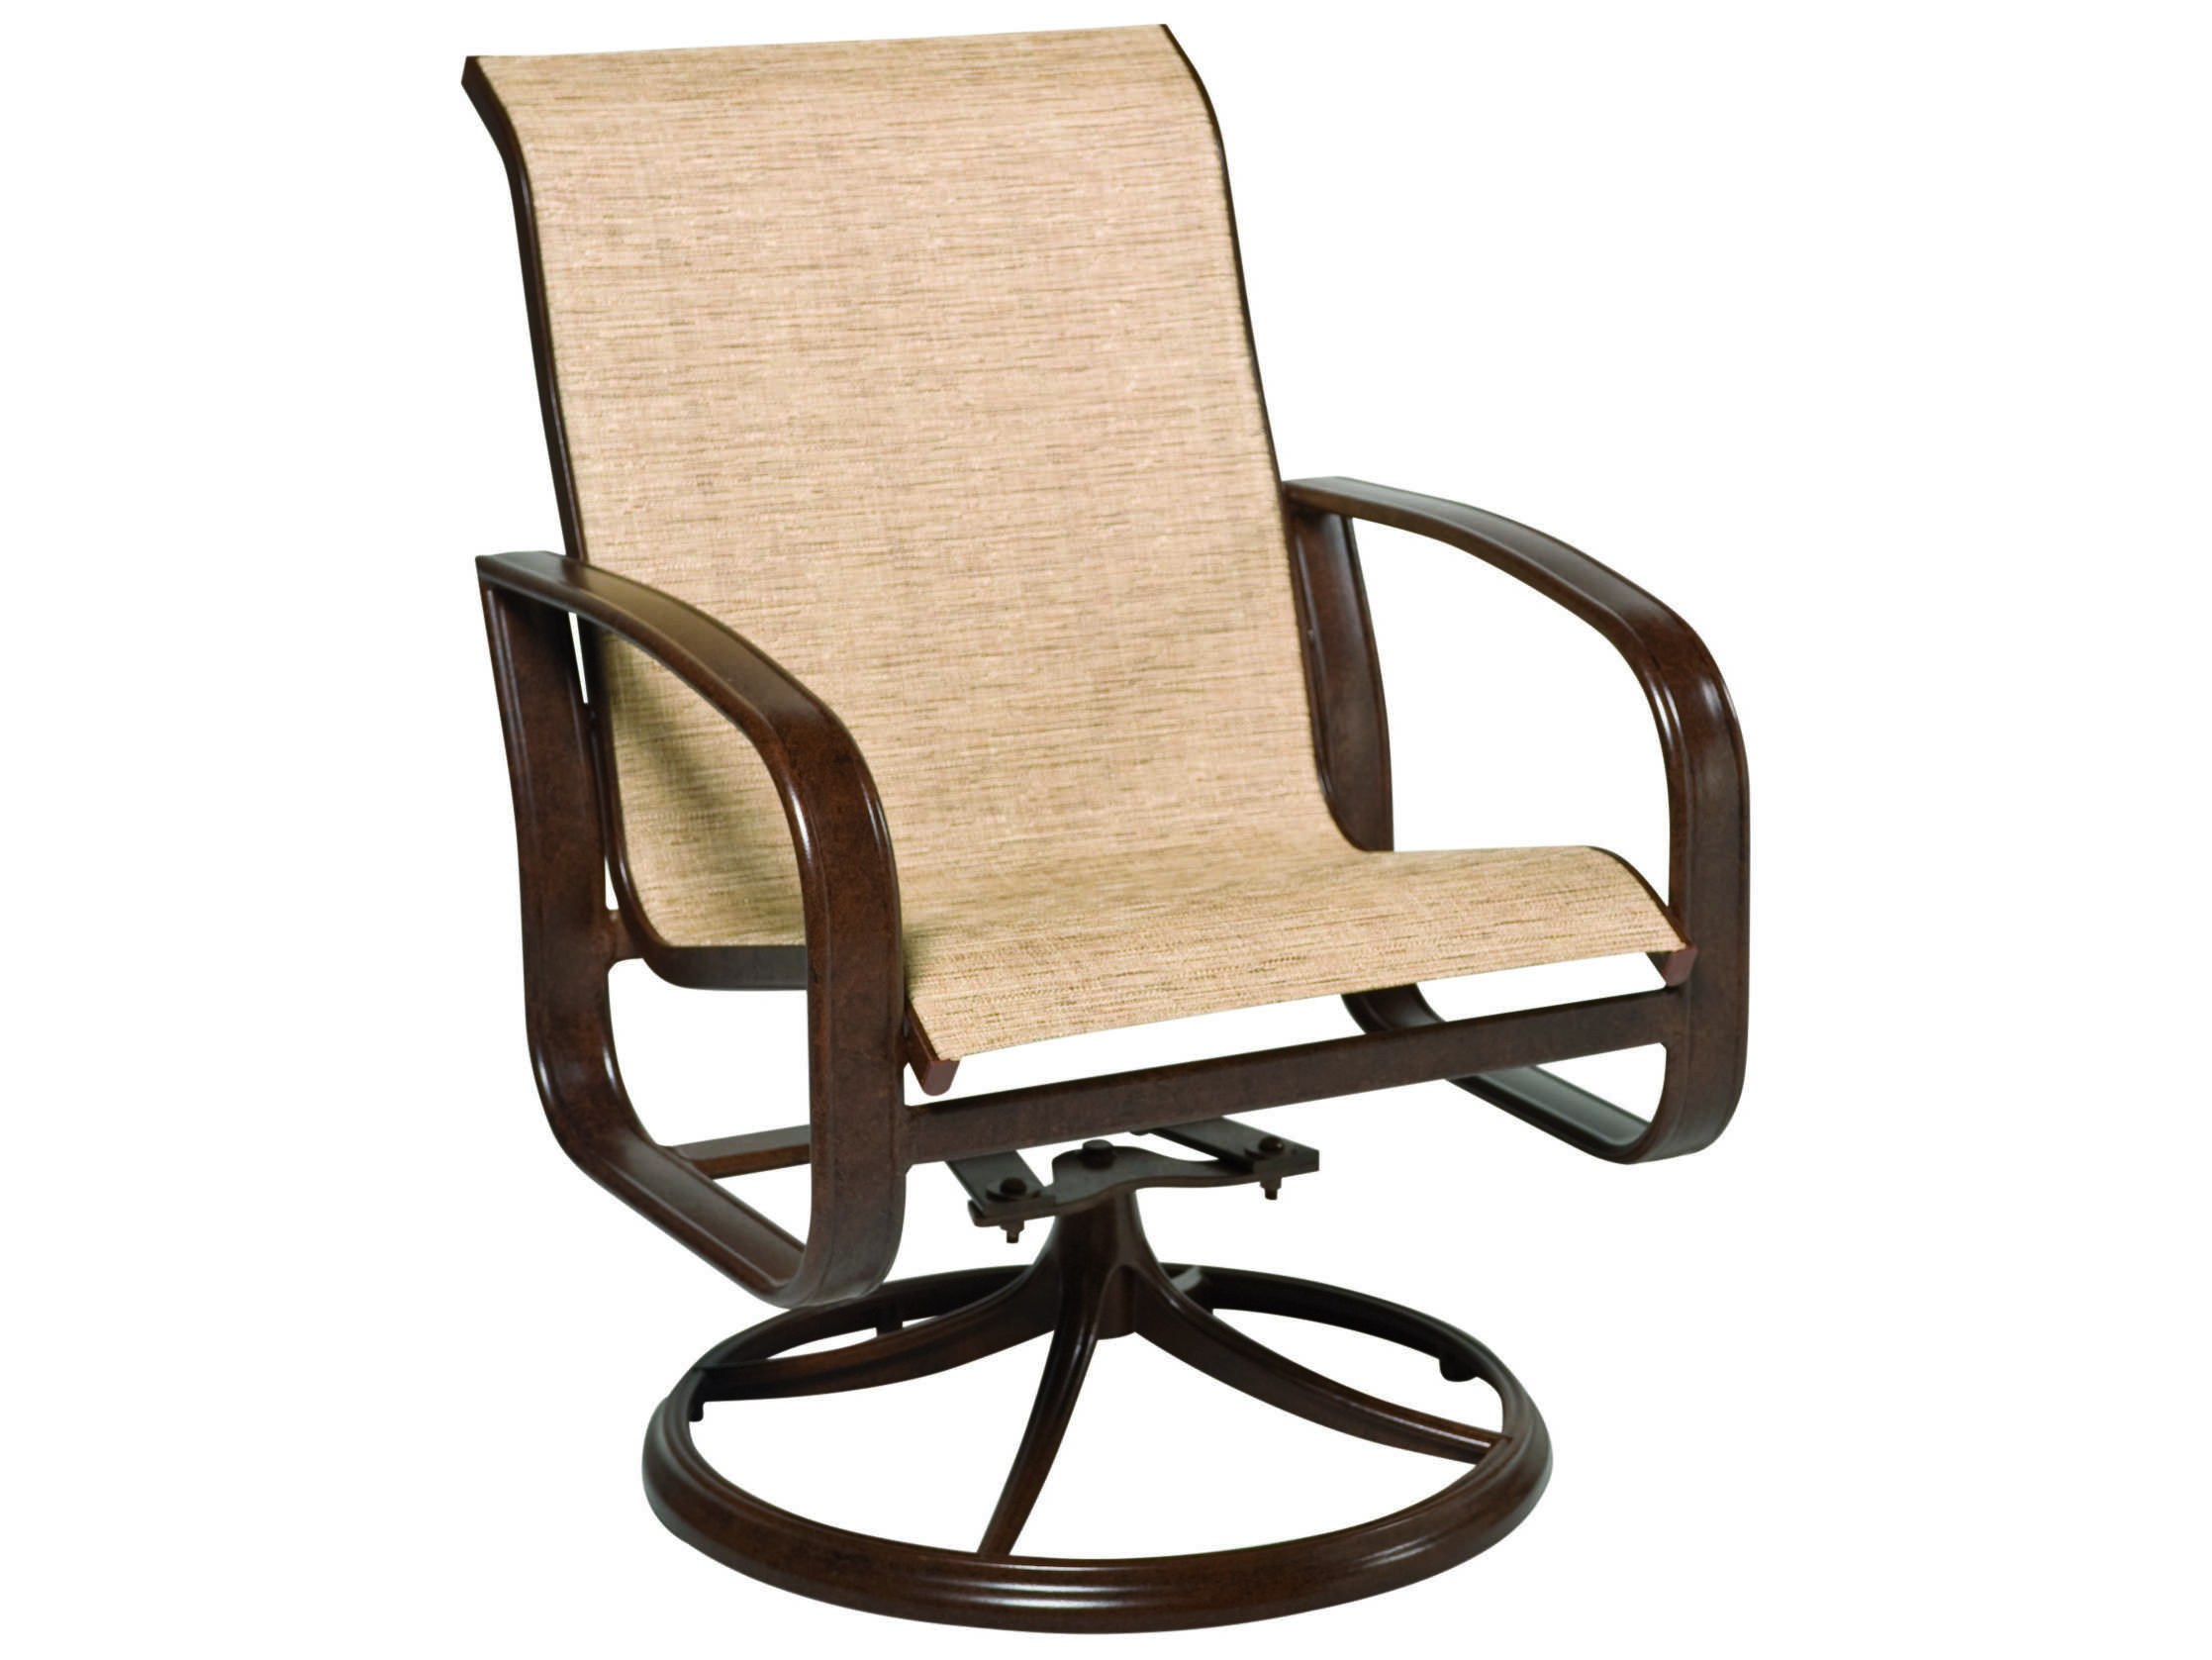 Sling Chairs Woodard Cayman Isle Sling Aluminum Swivel Rocker Wr2fx472